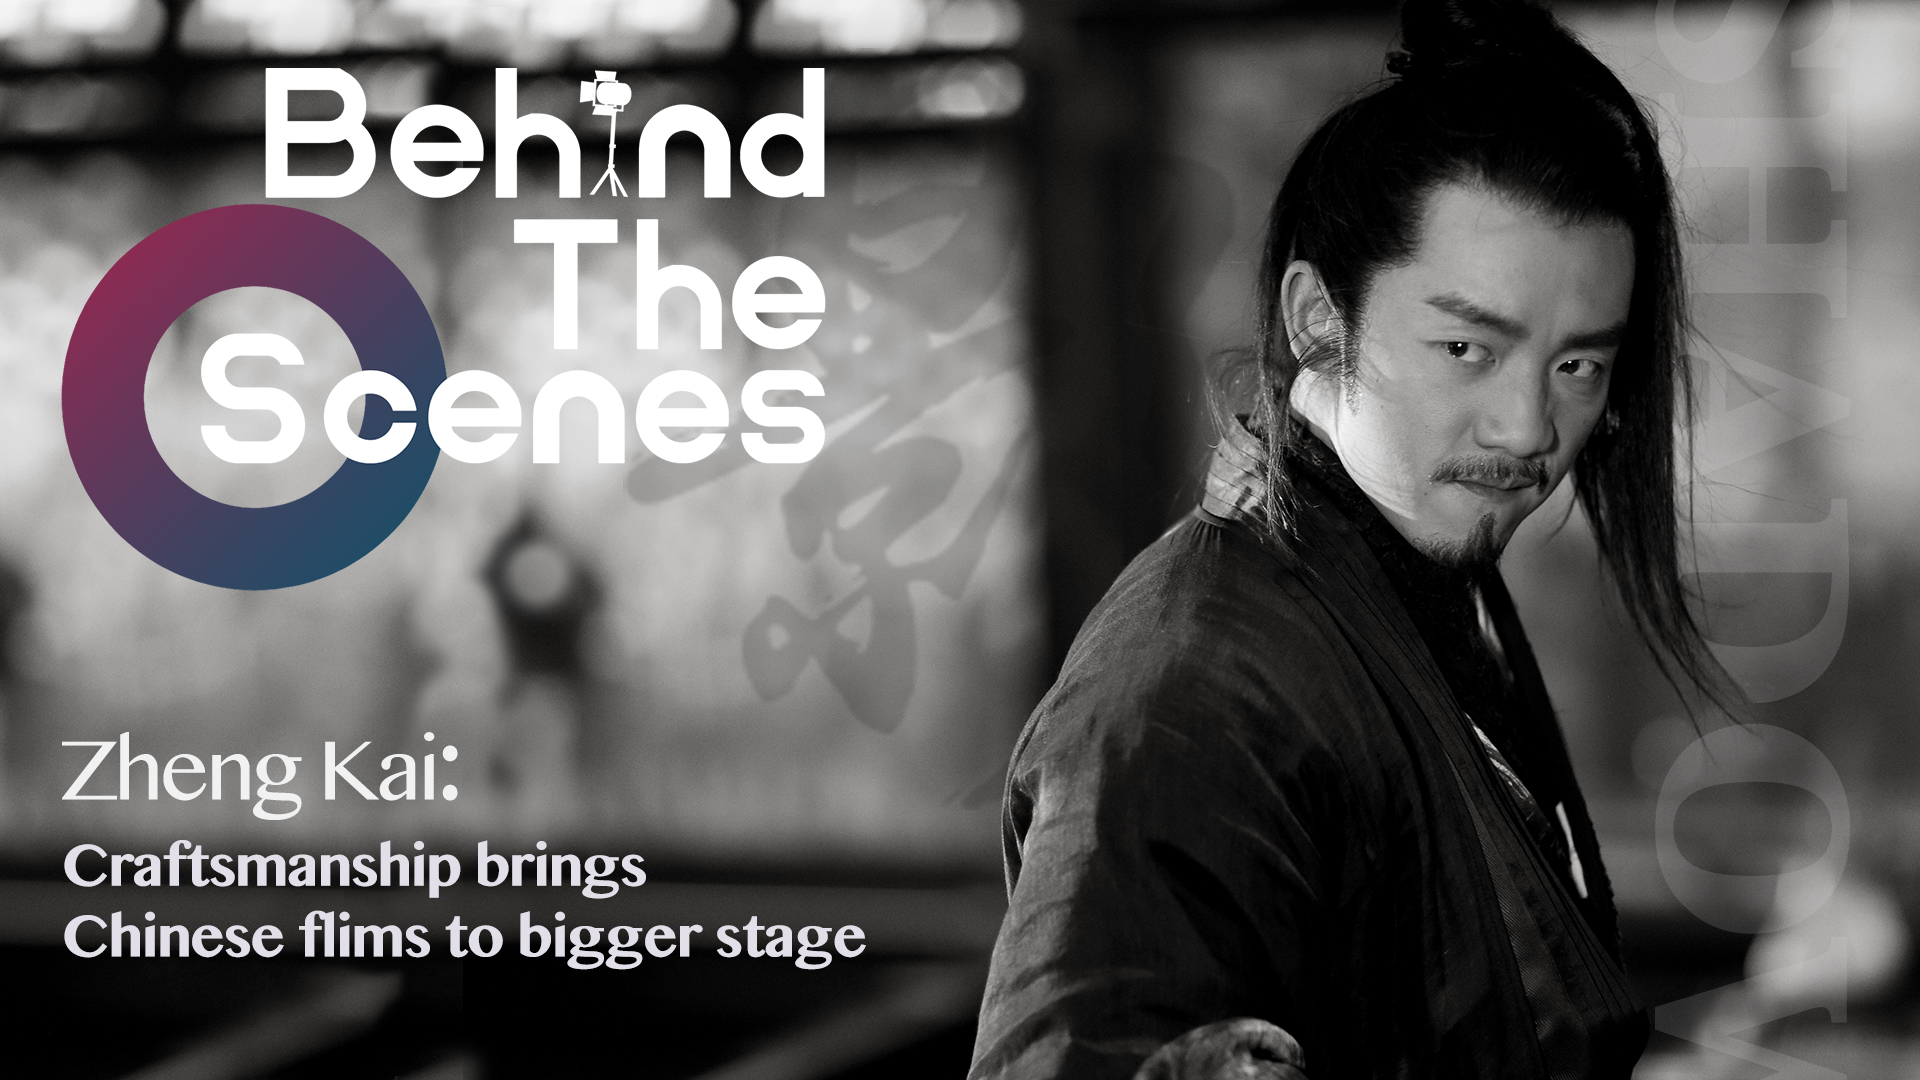 Behind the Scenes | Zheng Kai: Craftsmanship brings Chinese films to bigger stage